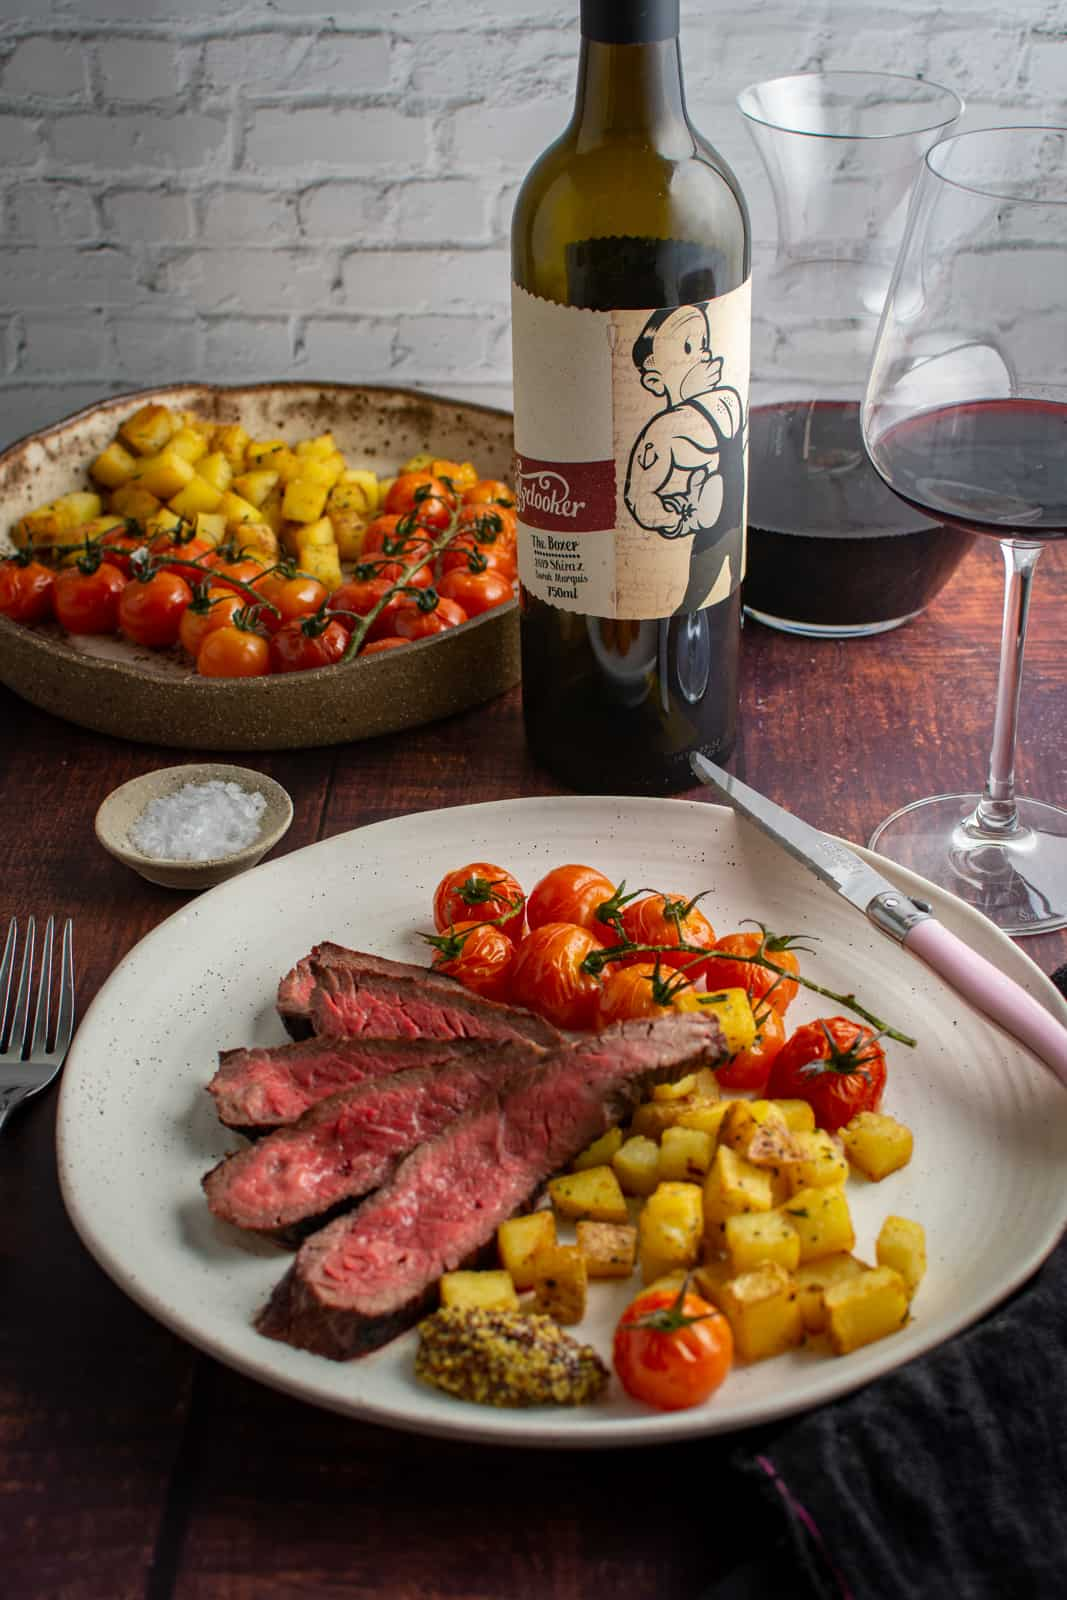 bavette steak, potatoes & tomatoes on a plate. Mollydooker red wine and wine glass in background